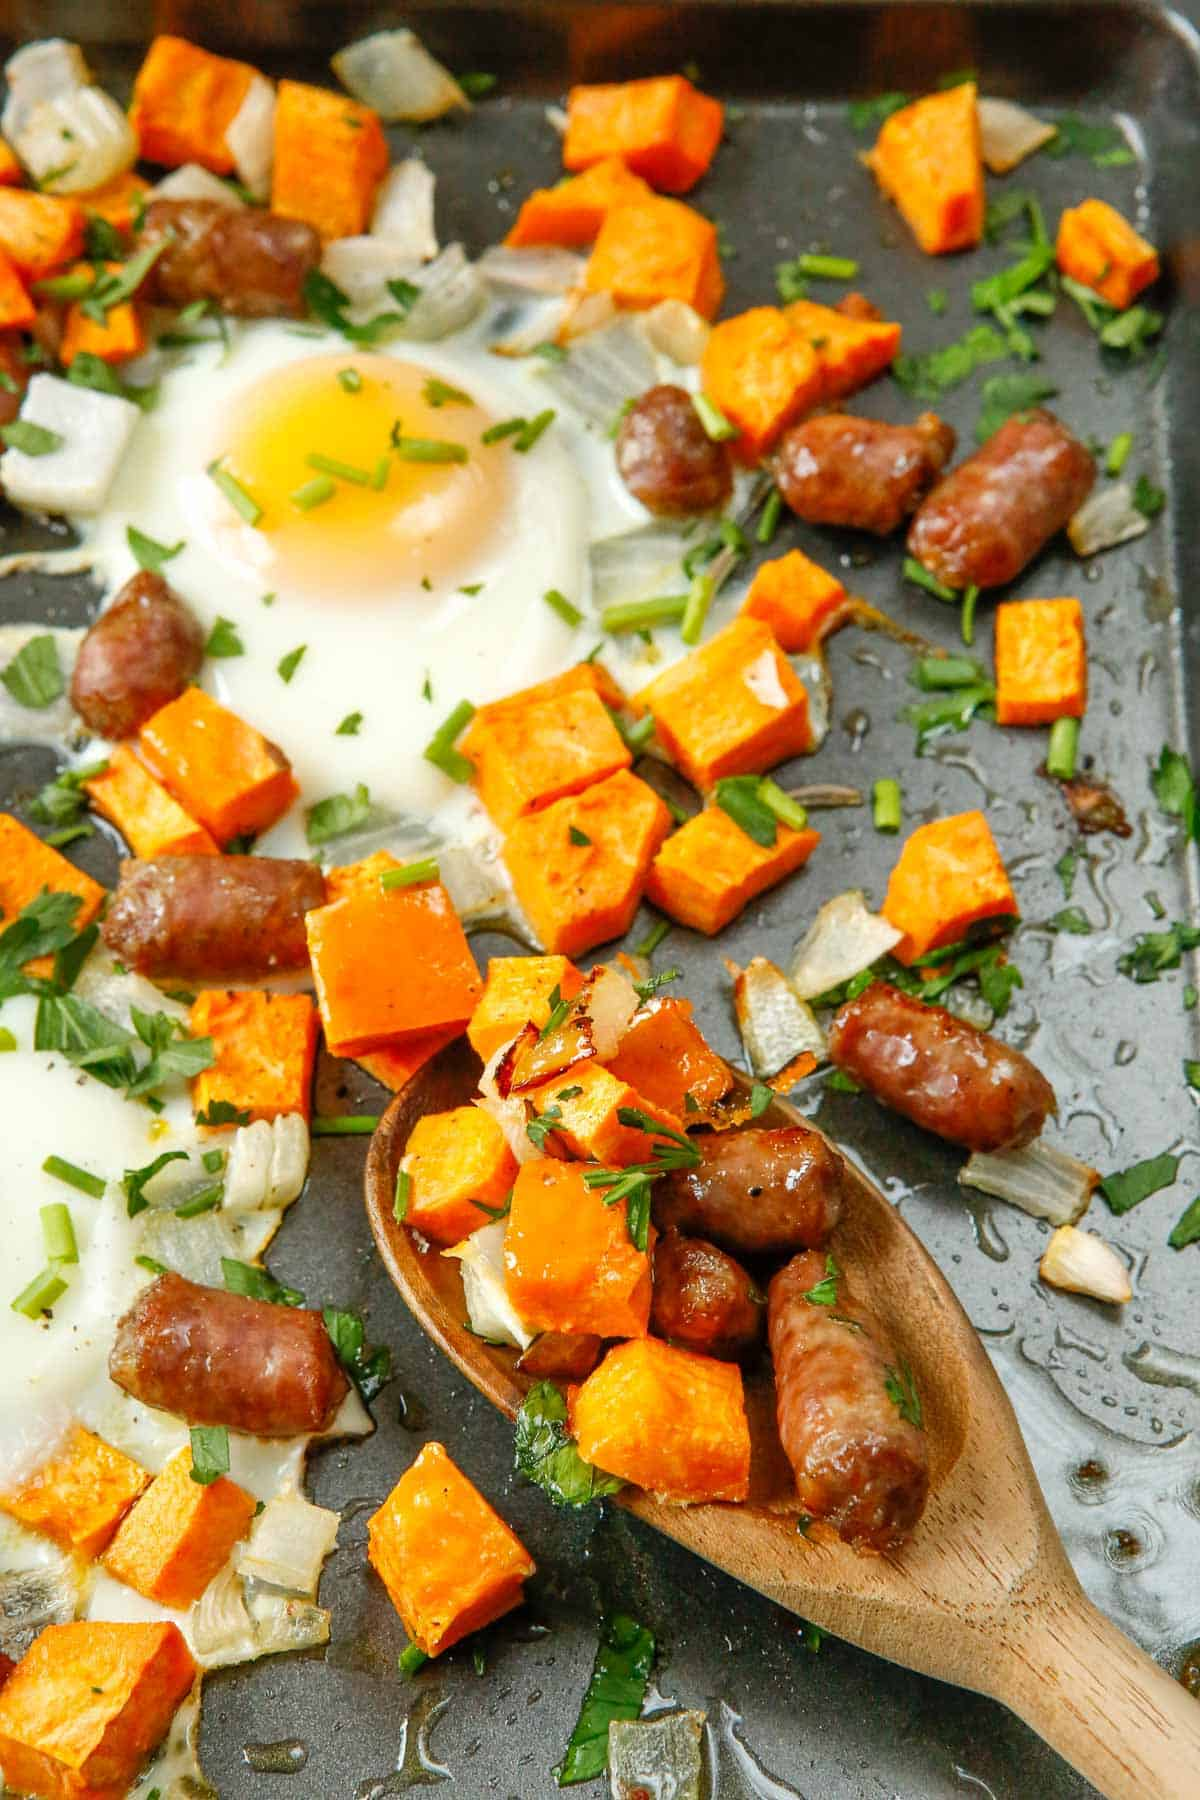 Breakfast hash being scooped up on a wooden spoon.